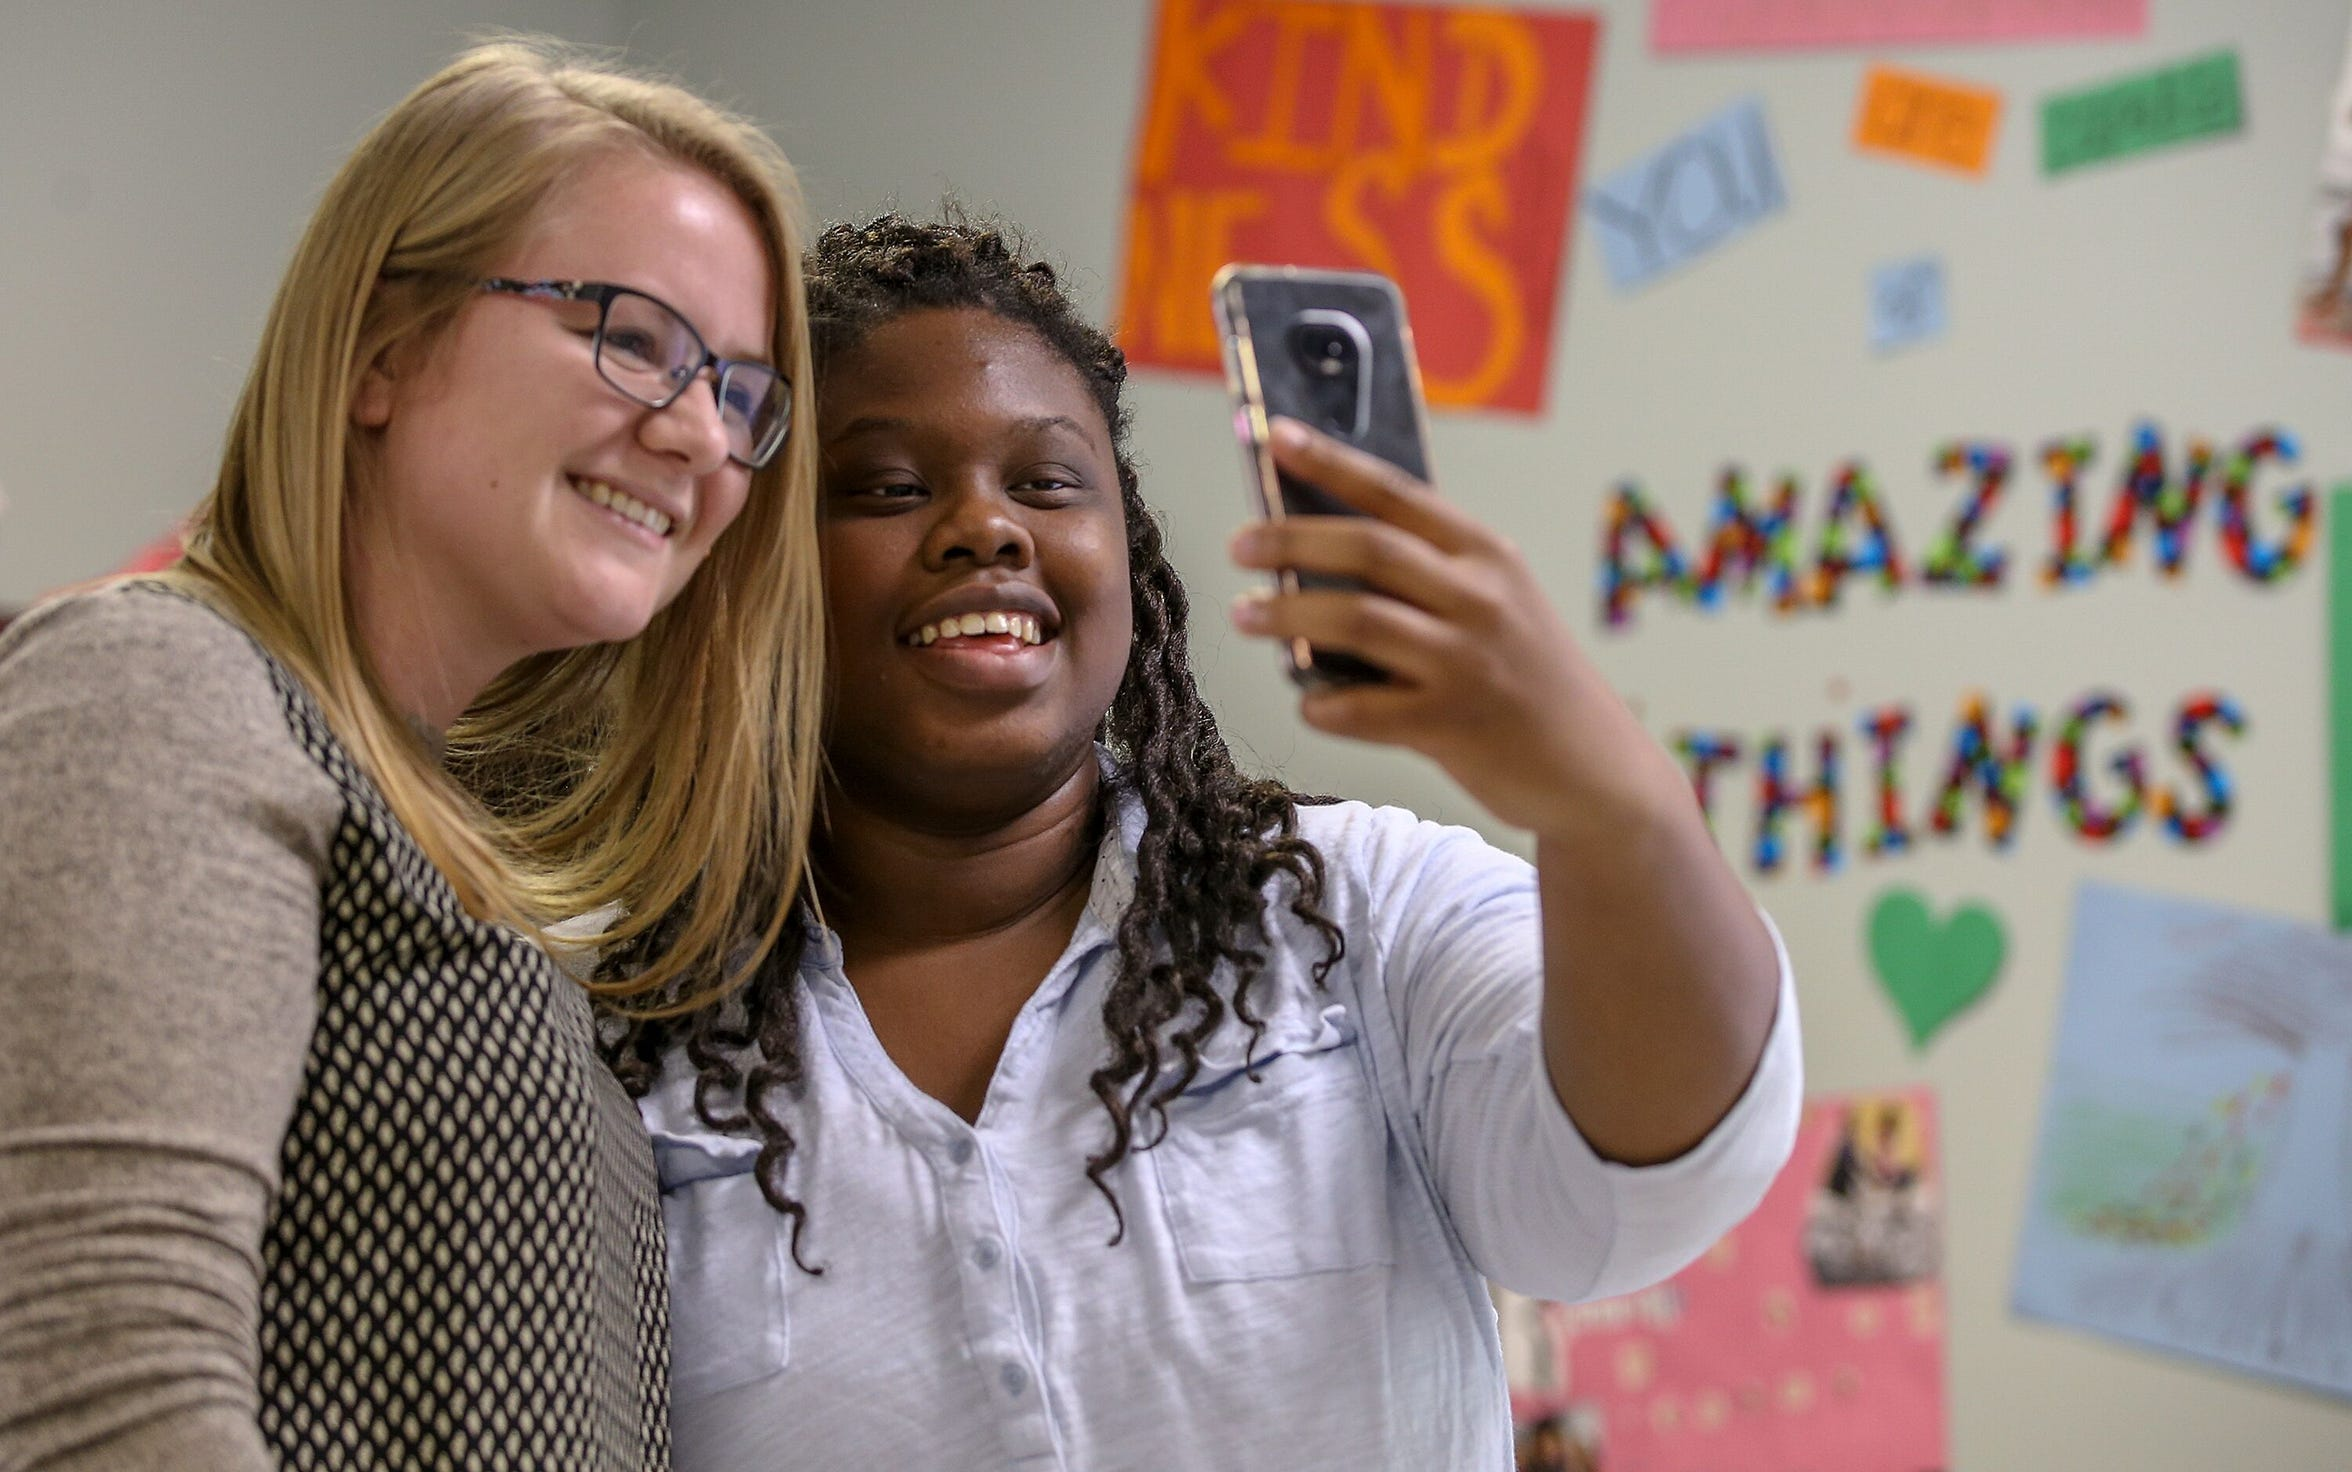 Kiki Shelton poses for a selfie with her internship instructor Carli Mosby-Smith at the Kentucky Youth Career Center in Louisville, Kentucky.